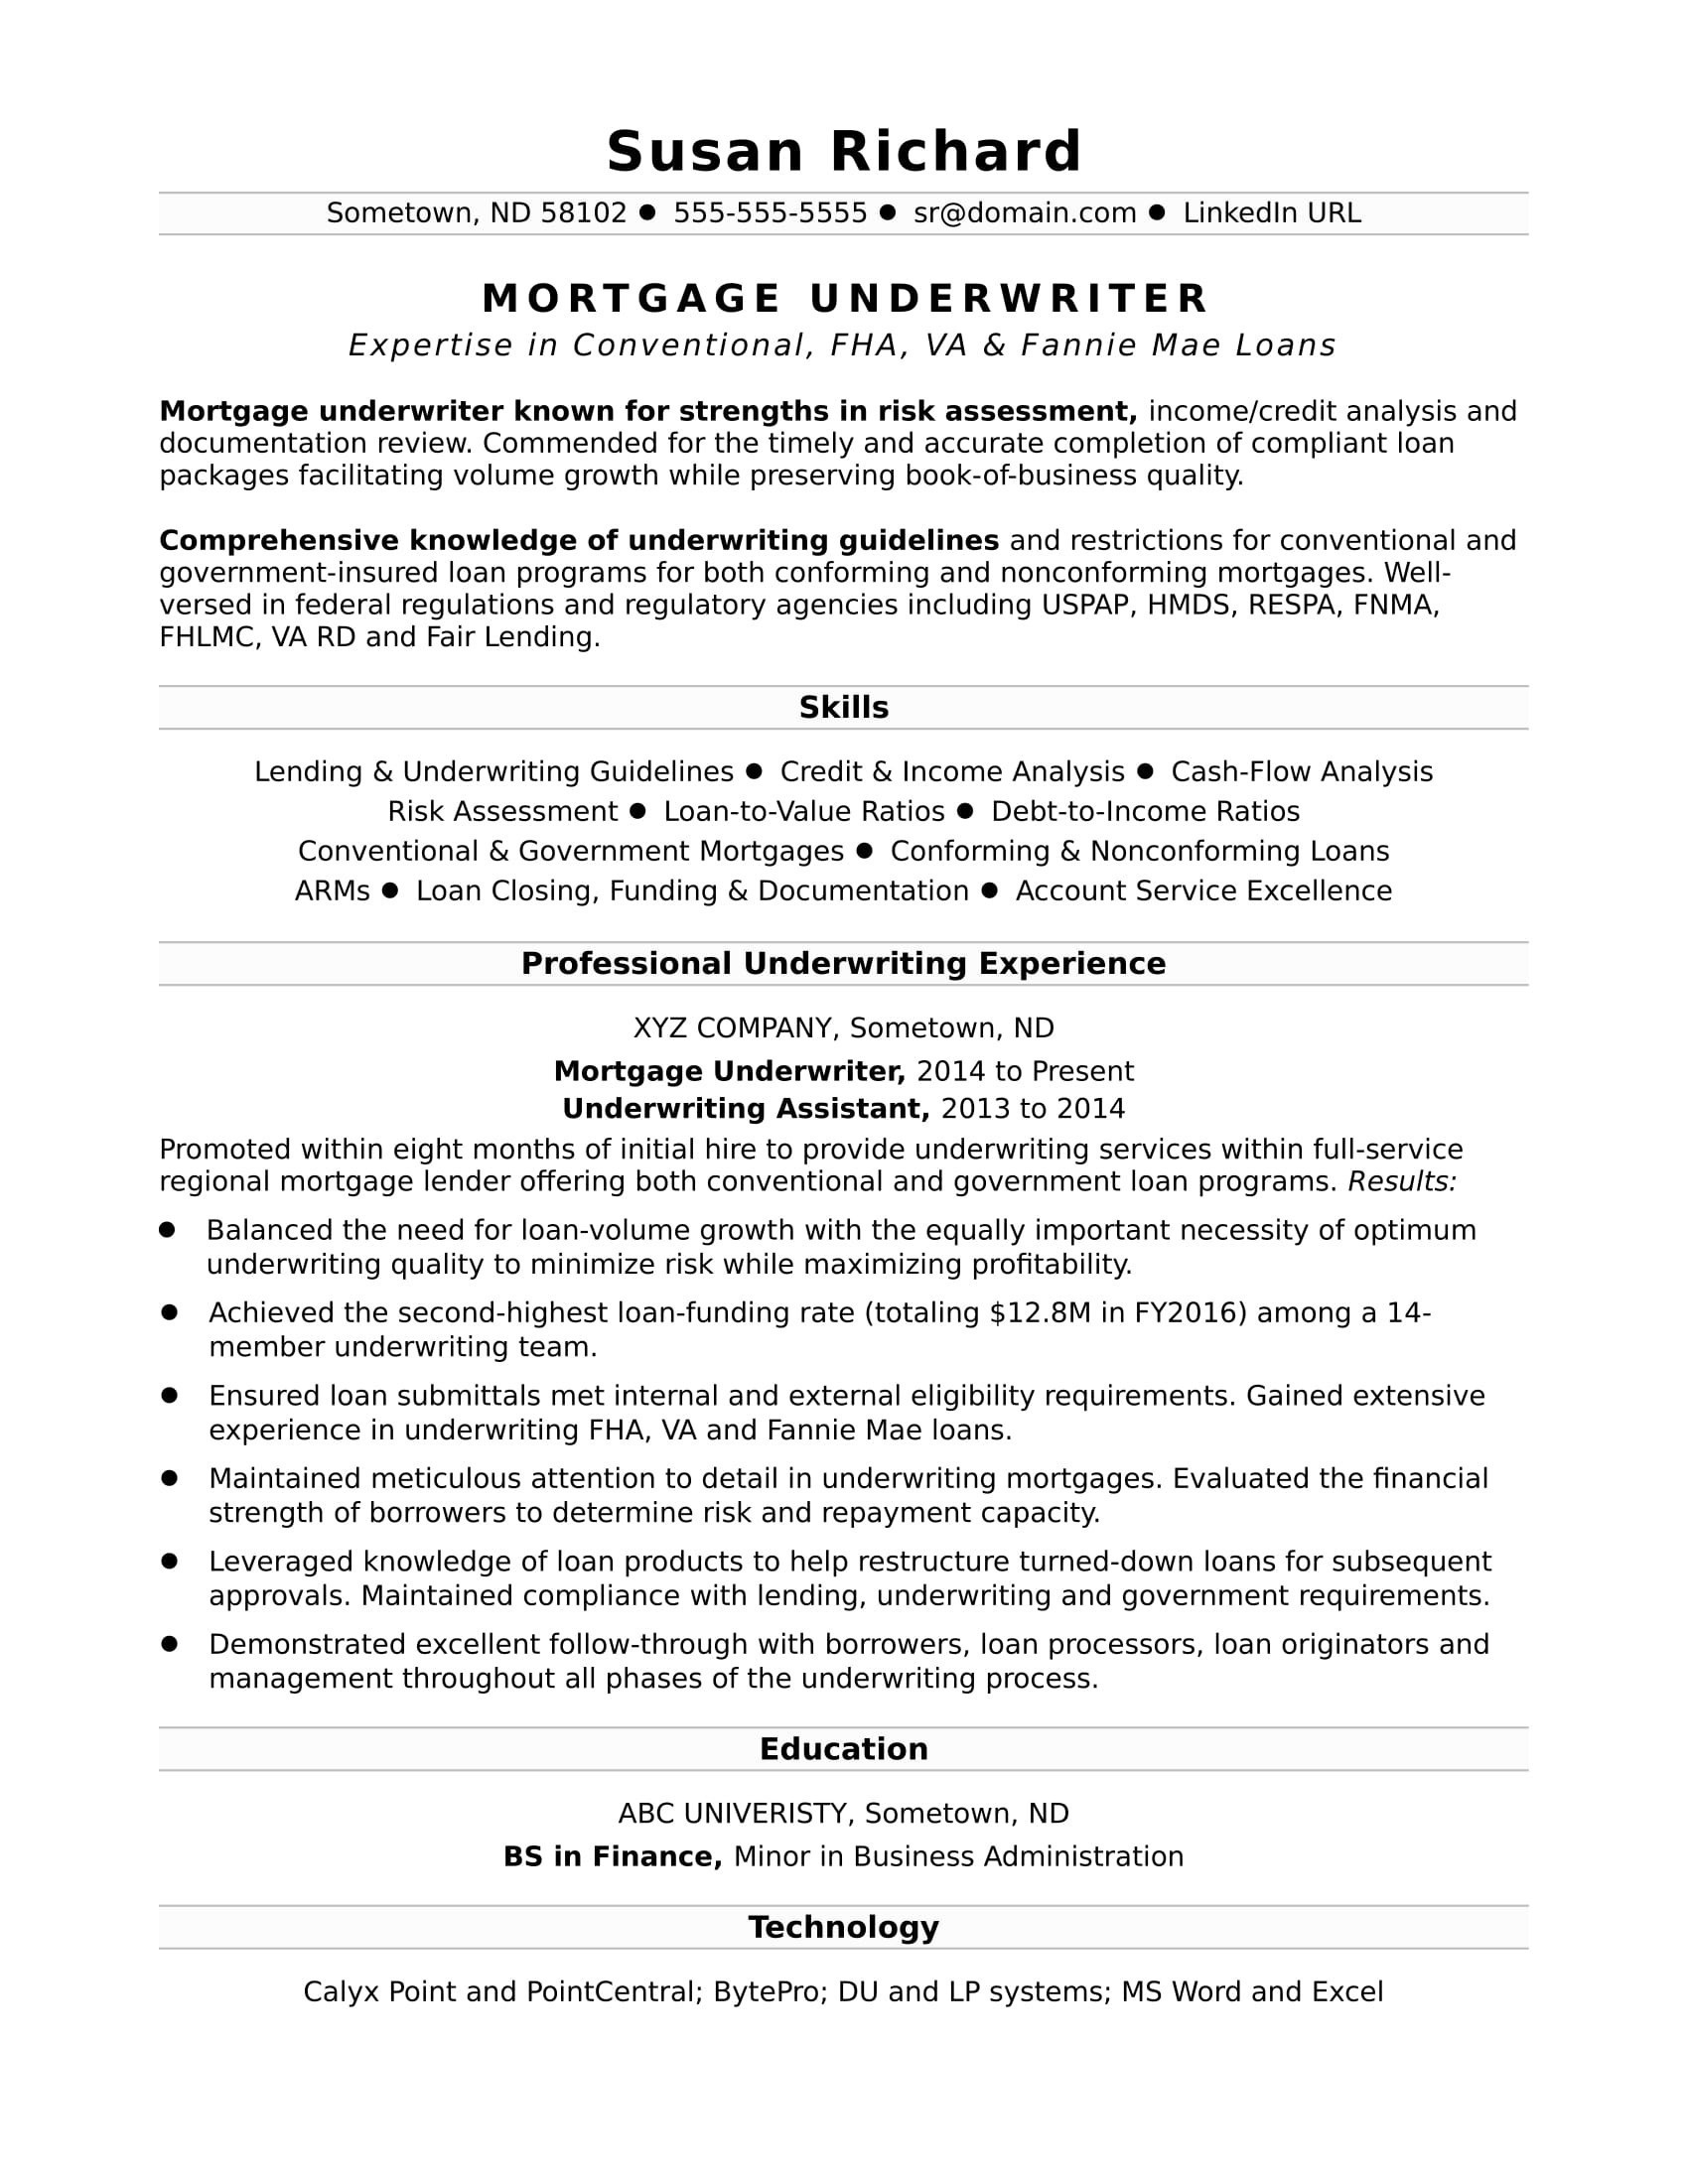 free cover letter design template example-Free Resume Search In India Unique New Programmer Resume Lovely Resume Cover Letter formatted Resume 0d 14-r